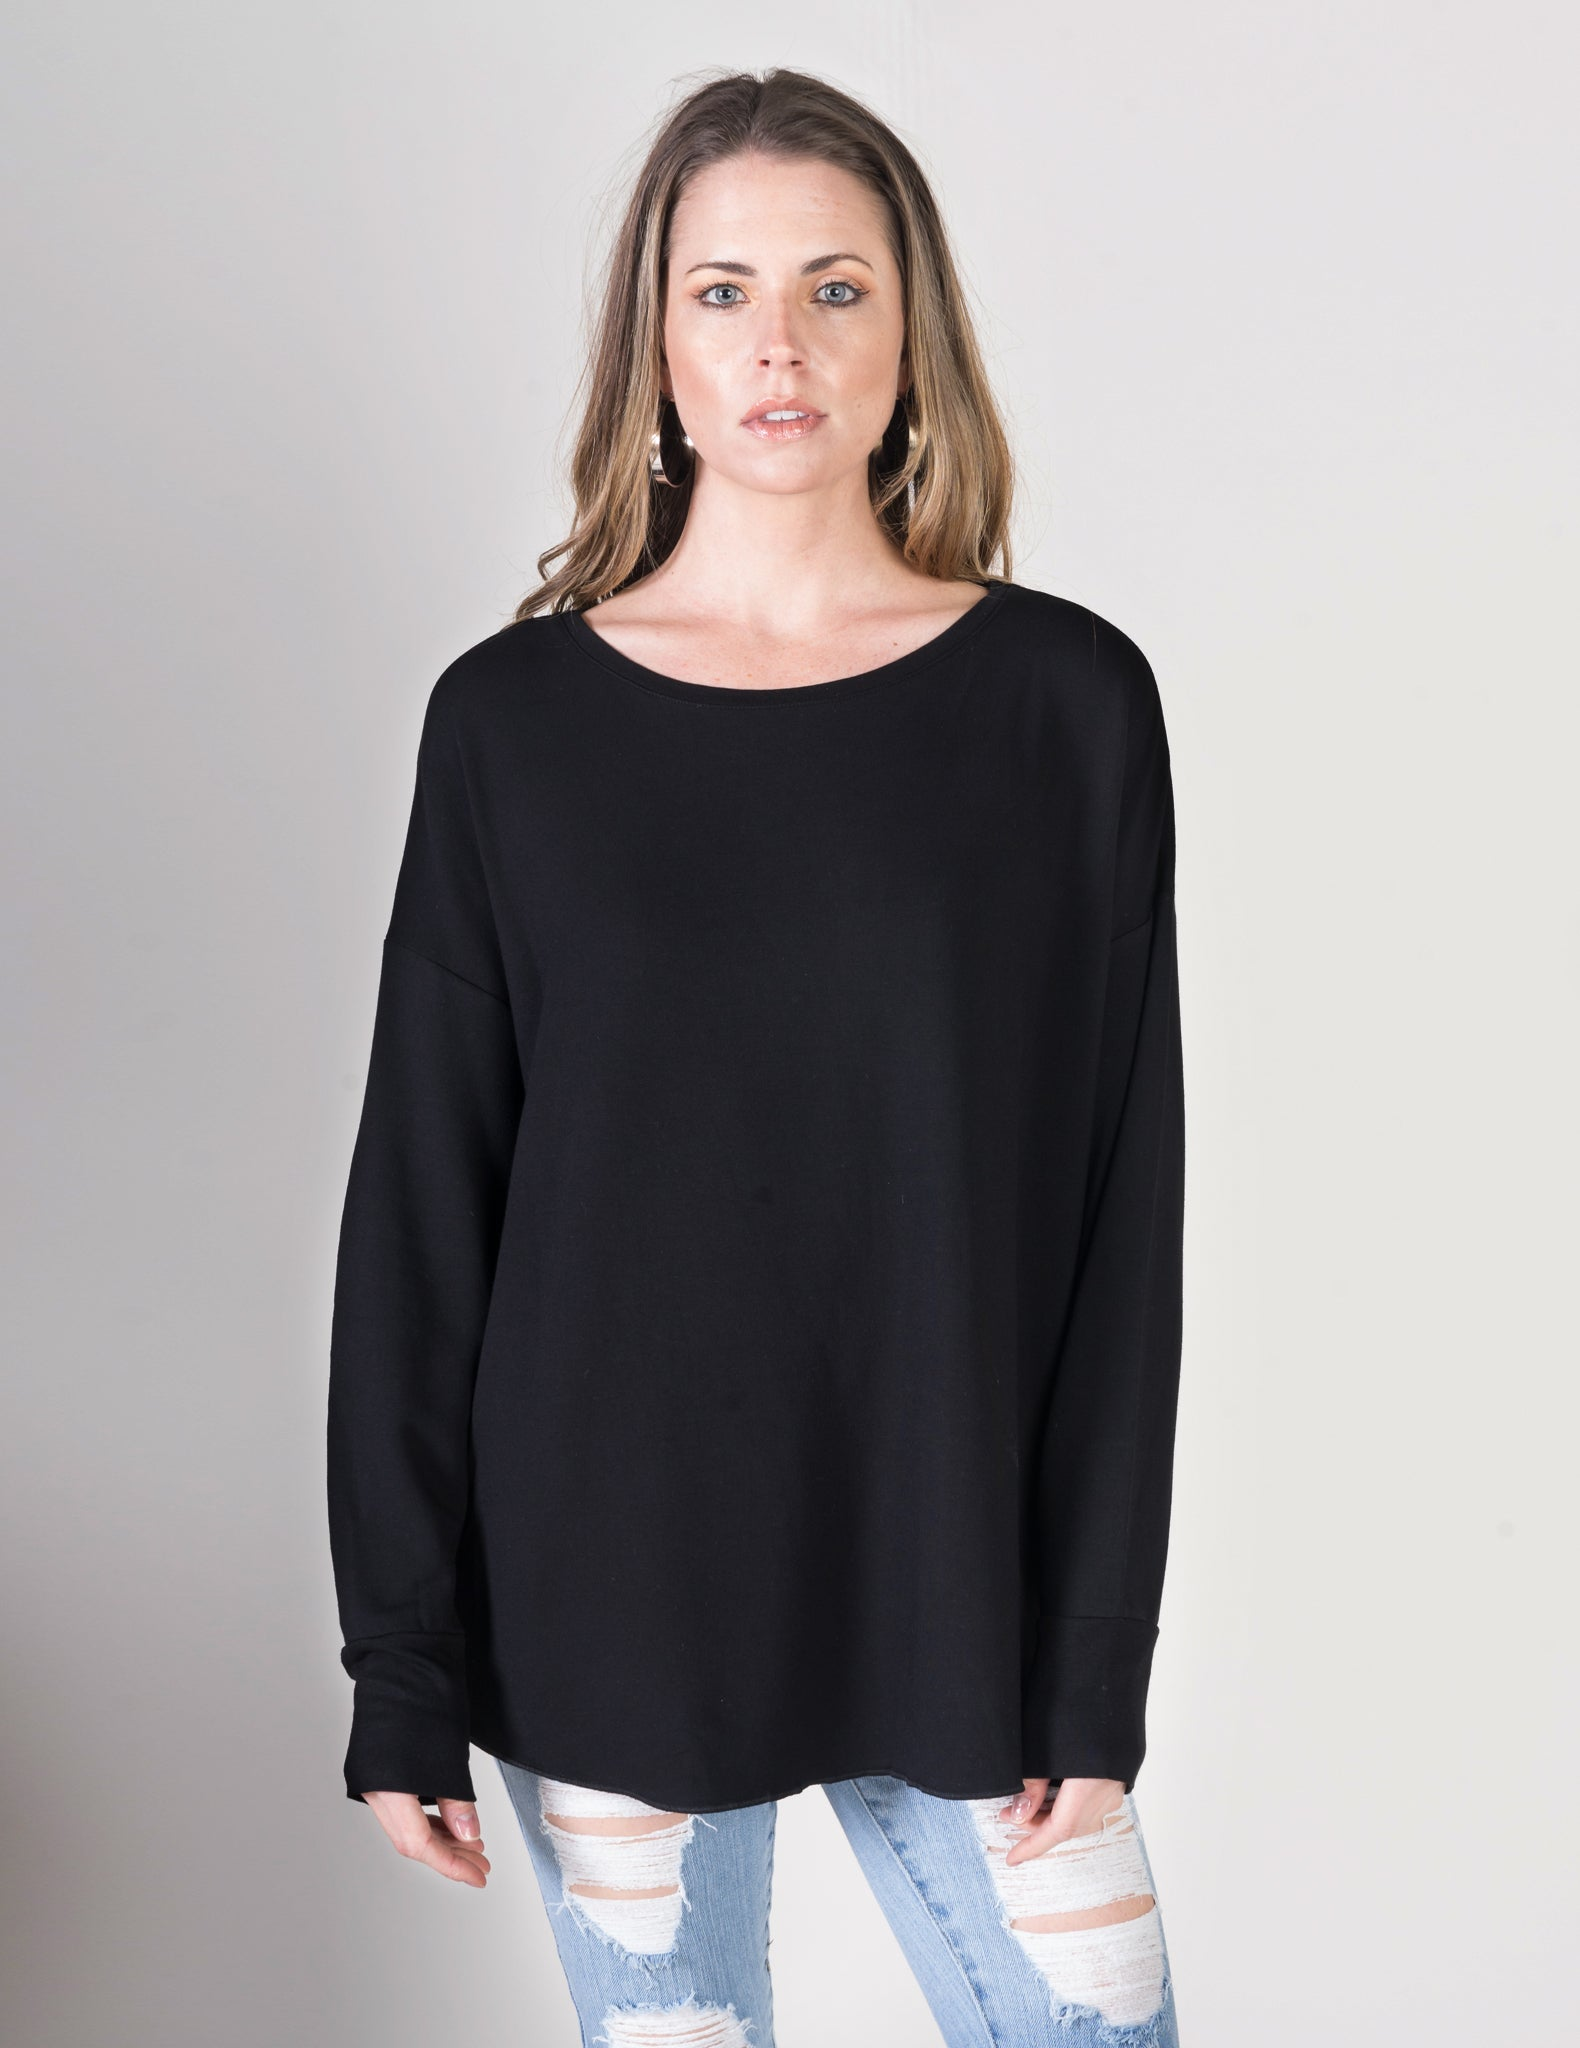 Majestic Long Sleeve Viscose Oversized Crew Tee in Black